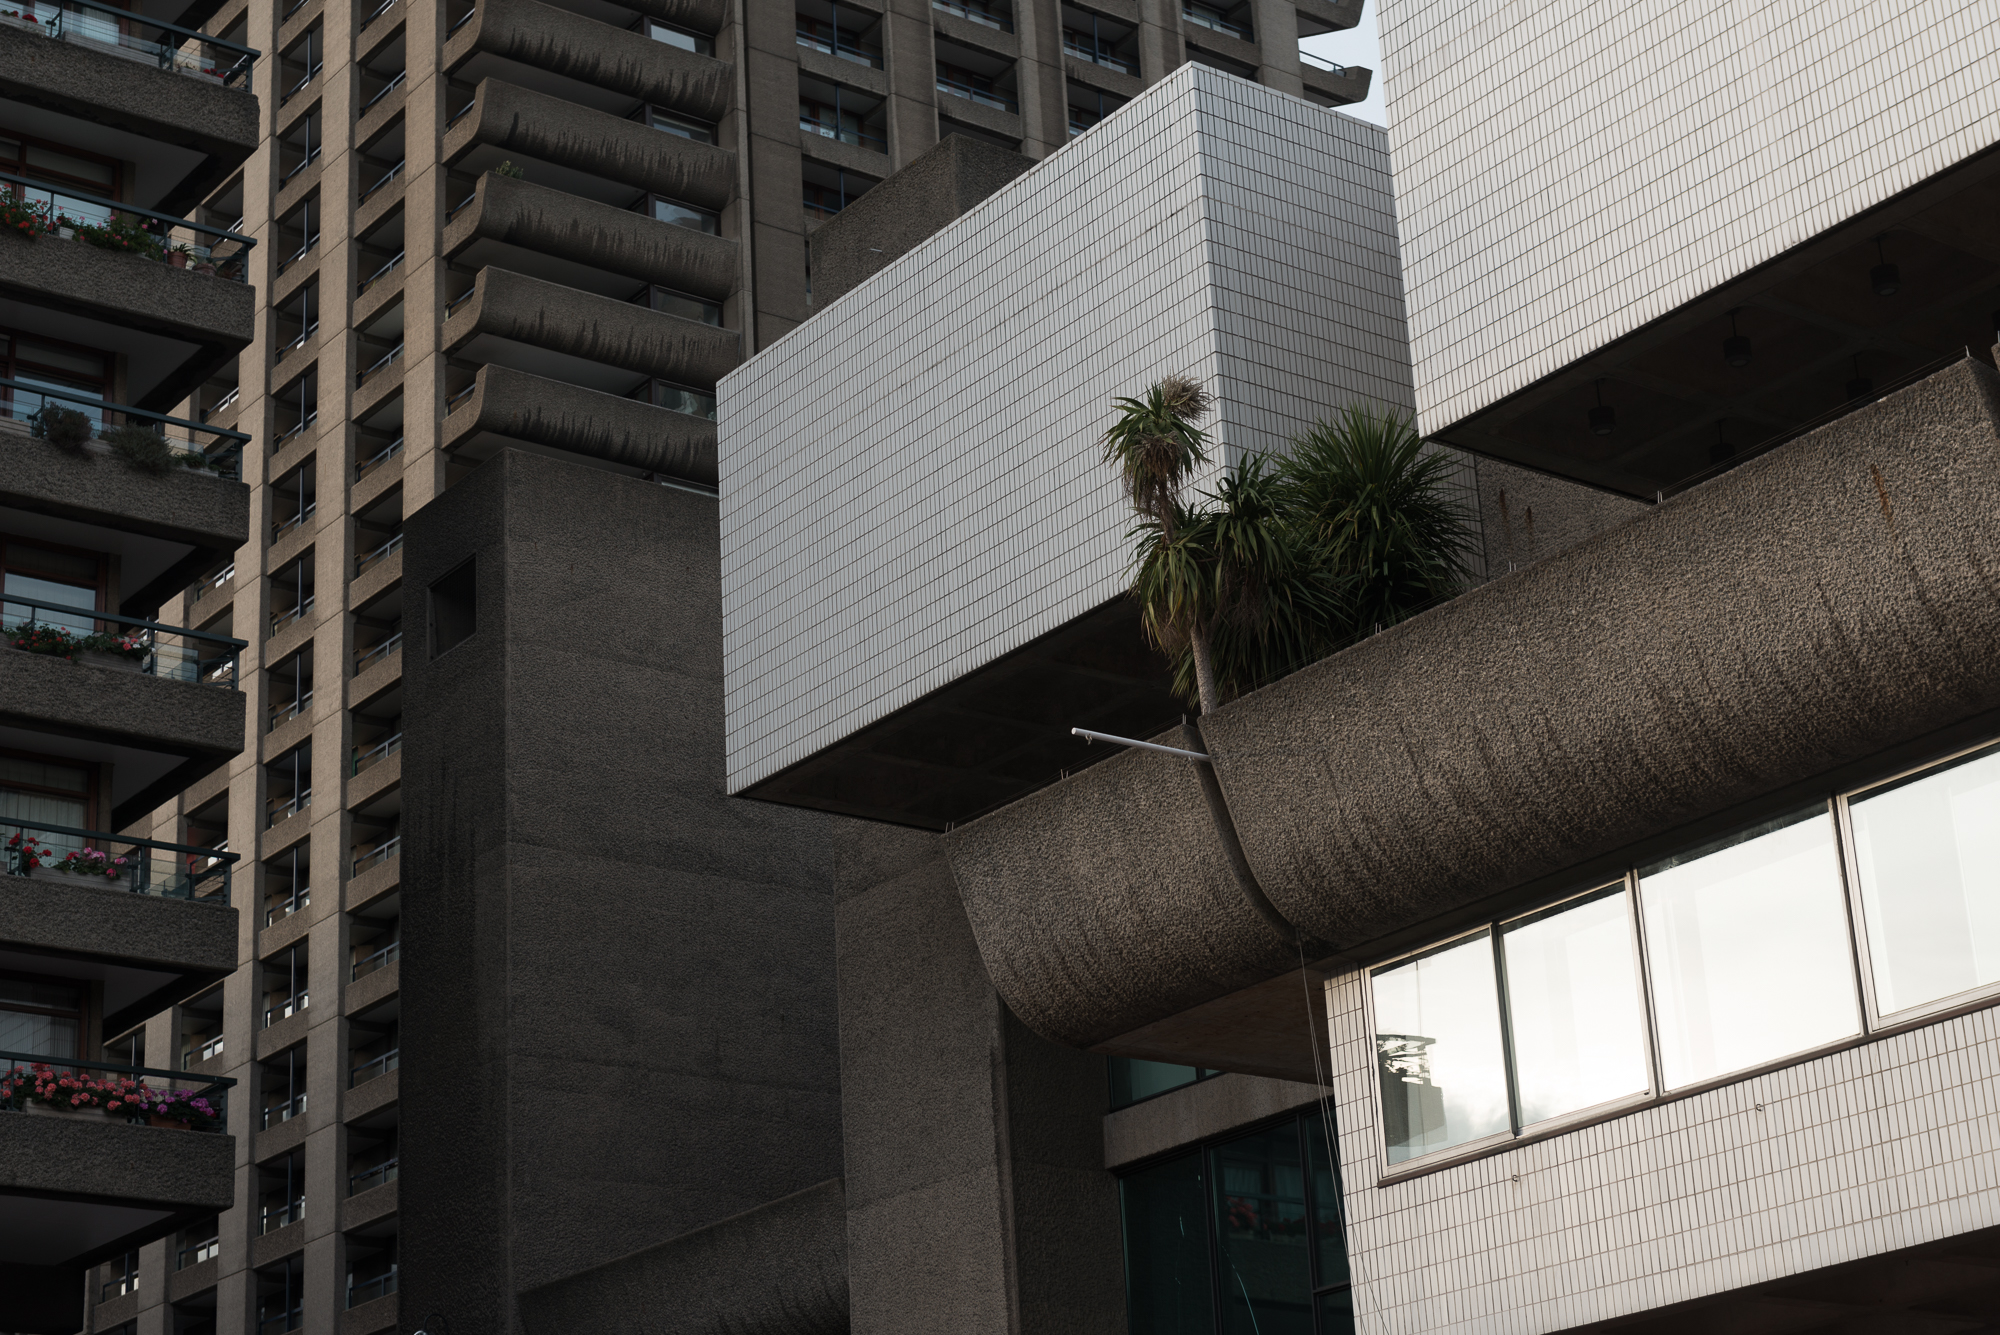 A photo of the a corner of The Barbican Centre with several tower blocks in the background.